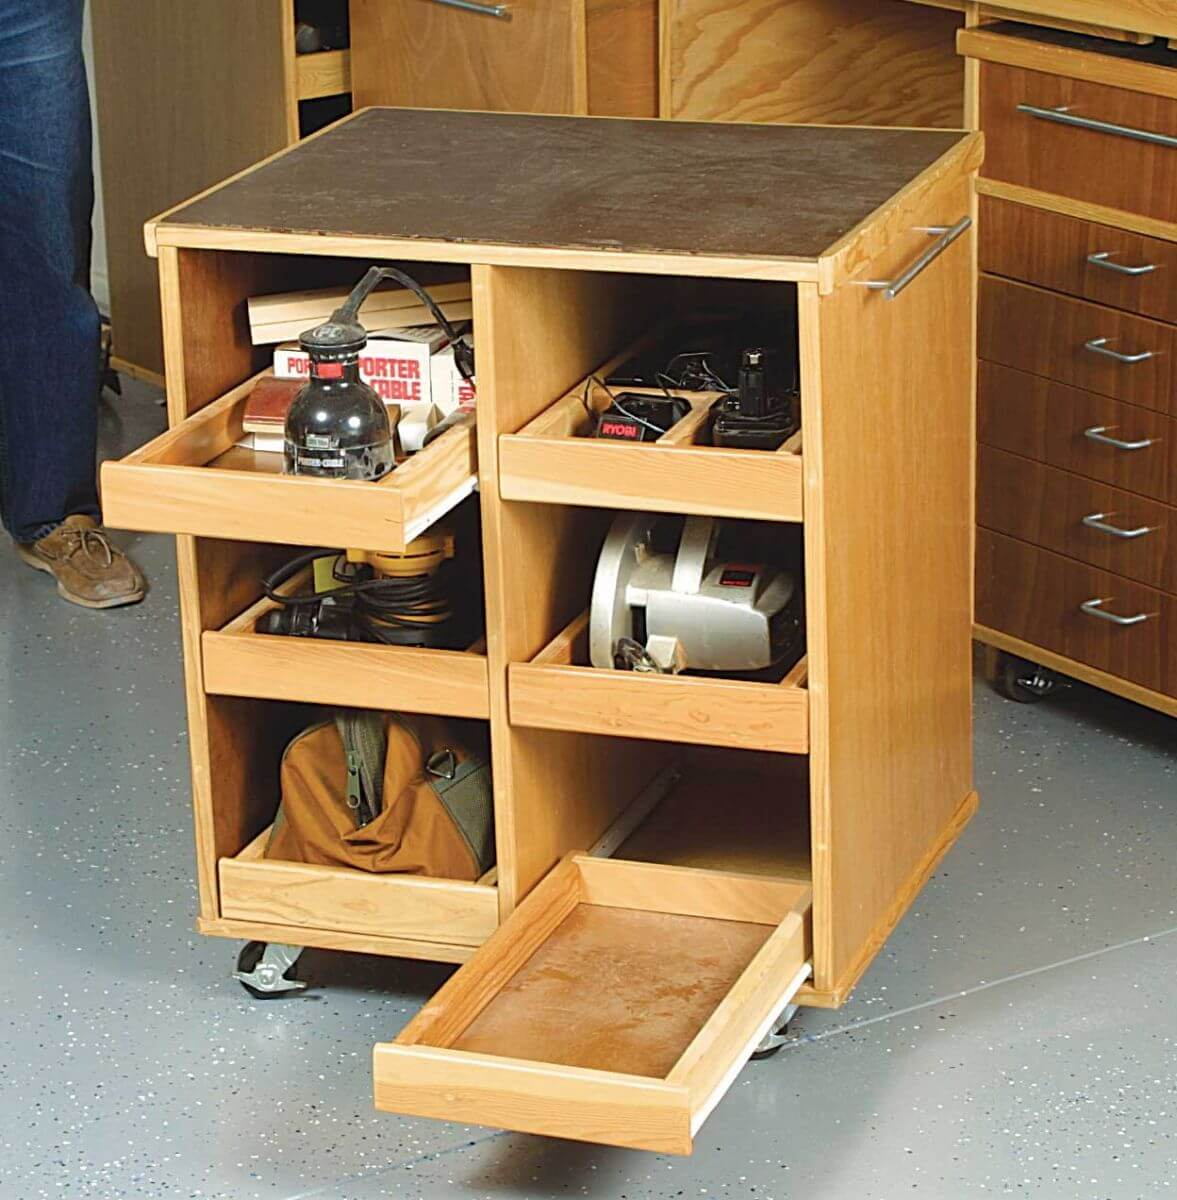 PREPARE THE TOOLS AND SUPPLIES BEFORE BUILD YOUR OWN GARAGE WORKBENCH